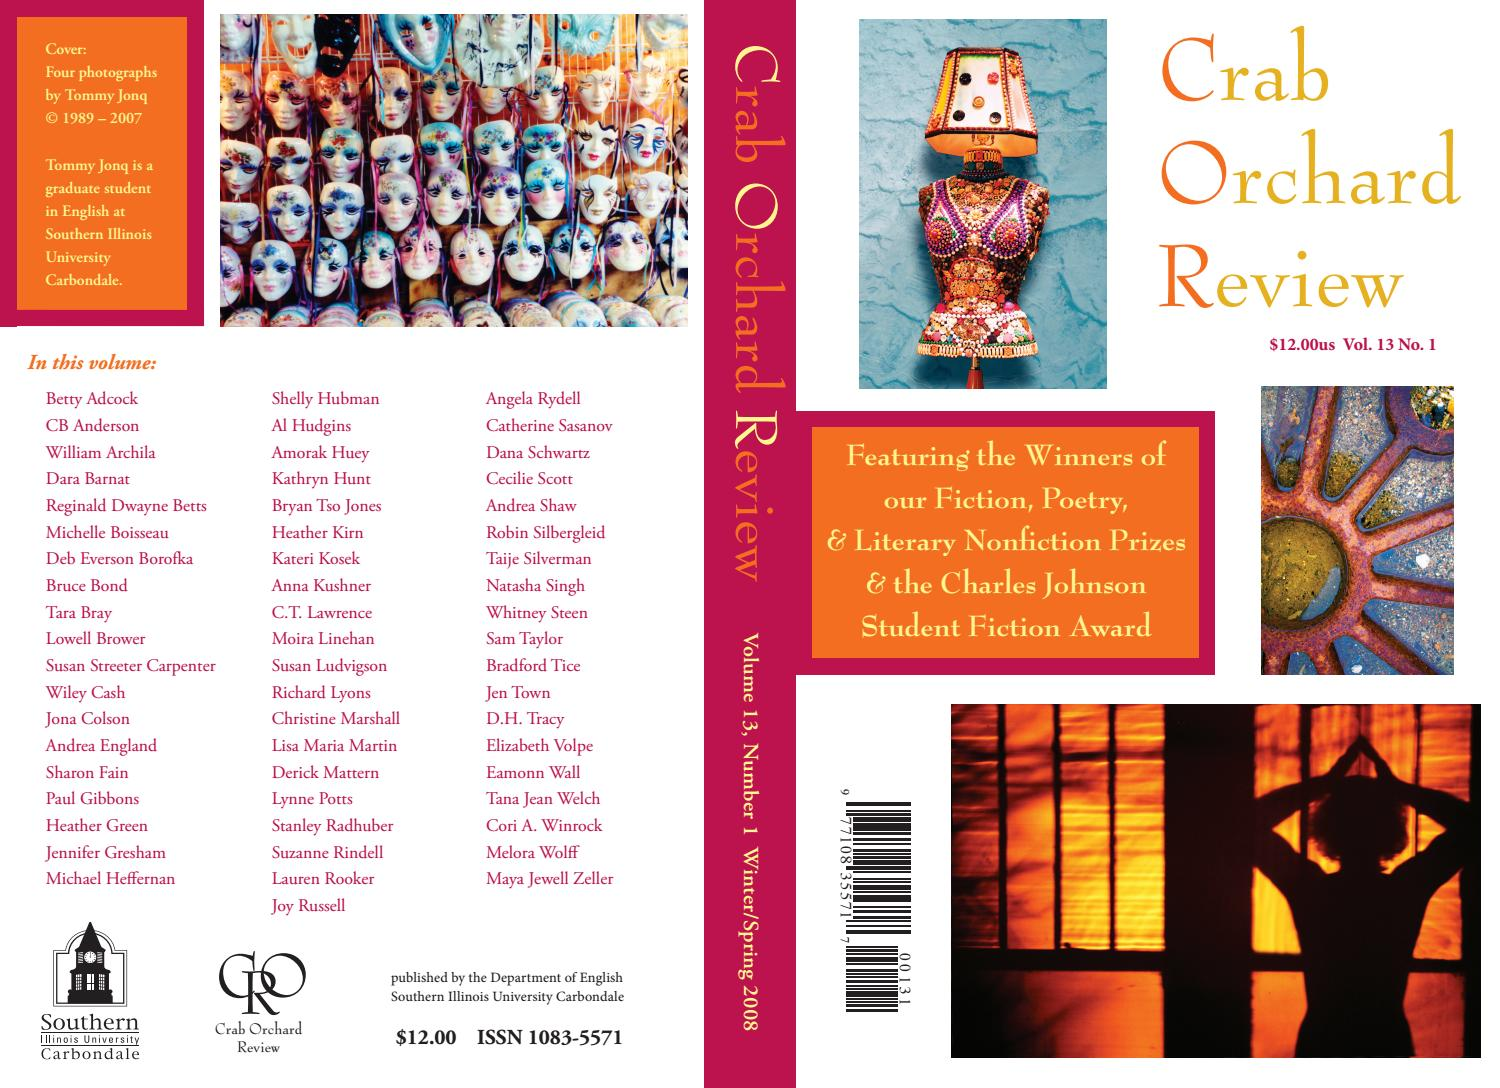 049ff5de1 Crab Orchard Review Vol 13 No 1 W/S 2008 by Crab Orchard Review - issuu